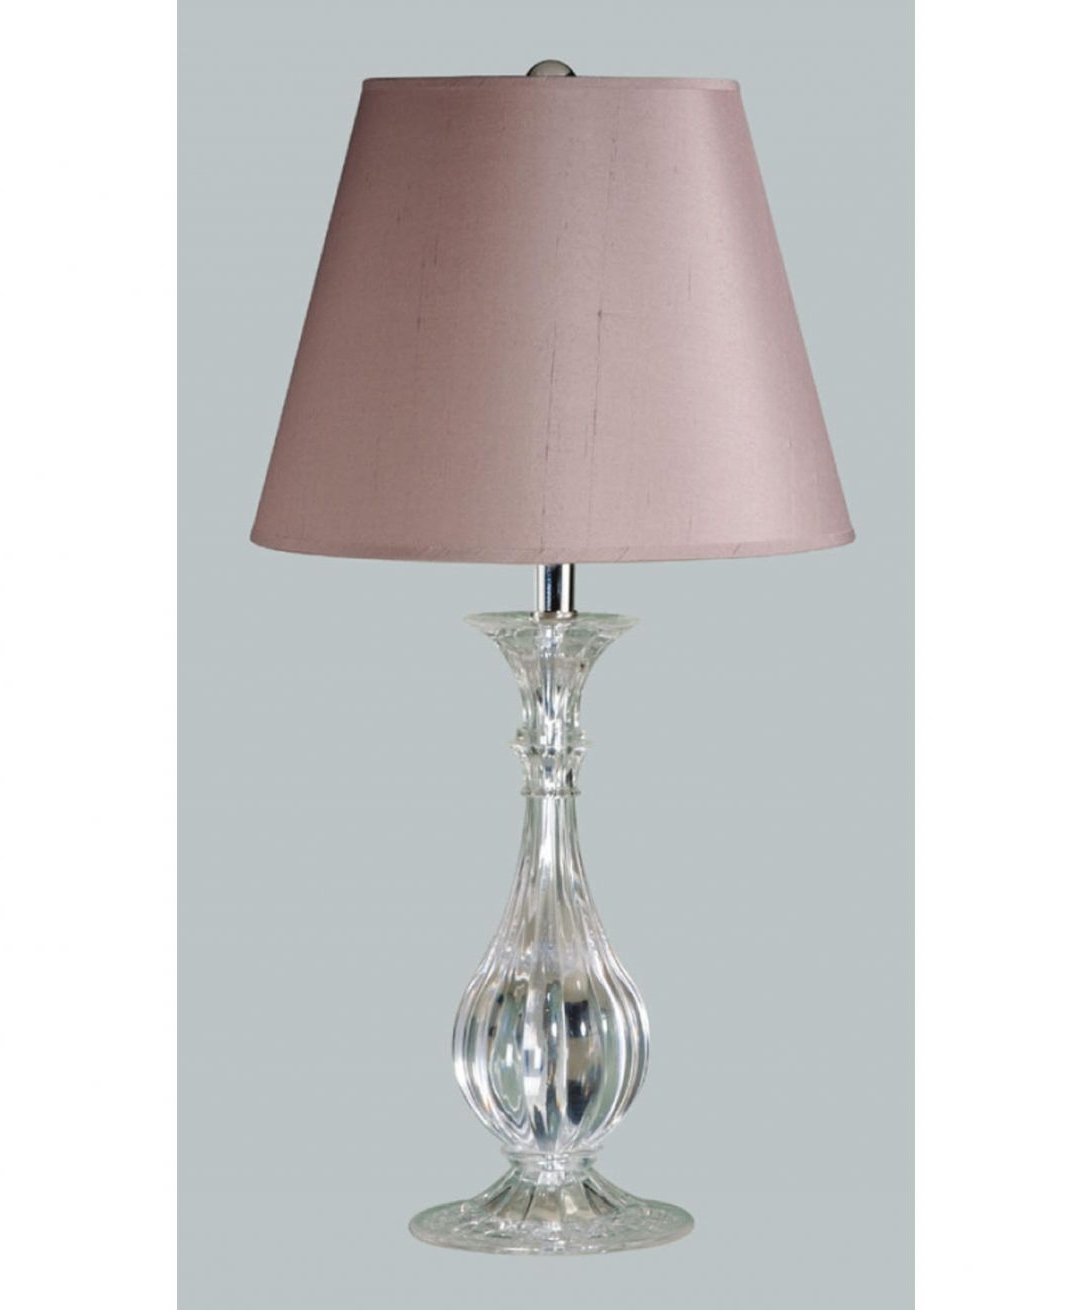 Most Popular Laura Ashley Table Lamps For Living Room Pertaining To 1940S Floor Lamp New Glass Table Base Laura Ashley Lamps – Downthewicket (View 12 of 15)